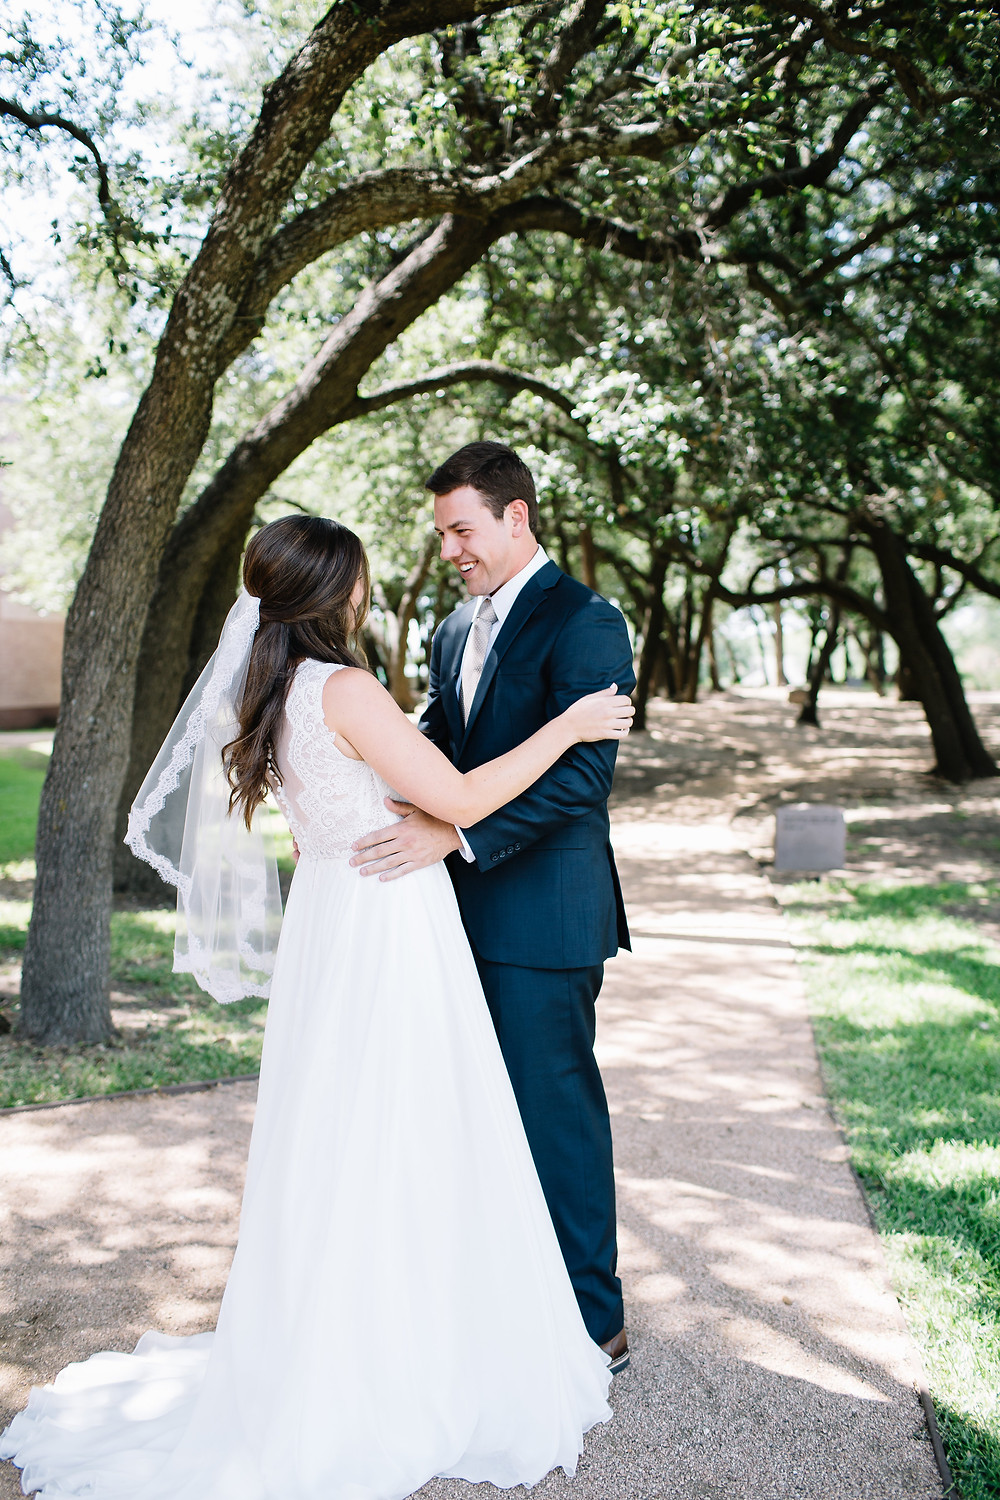 The Book of Beautiful Weddings - Evan Cranford Photography